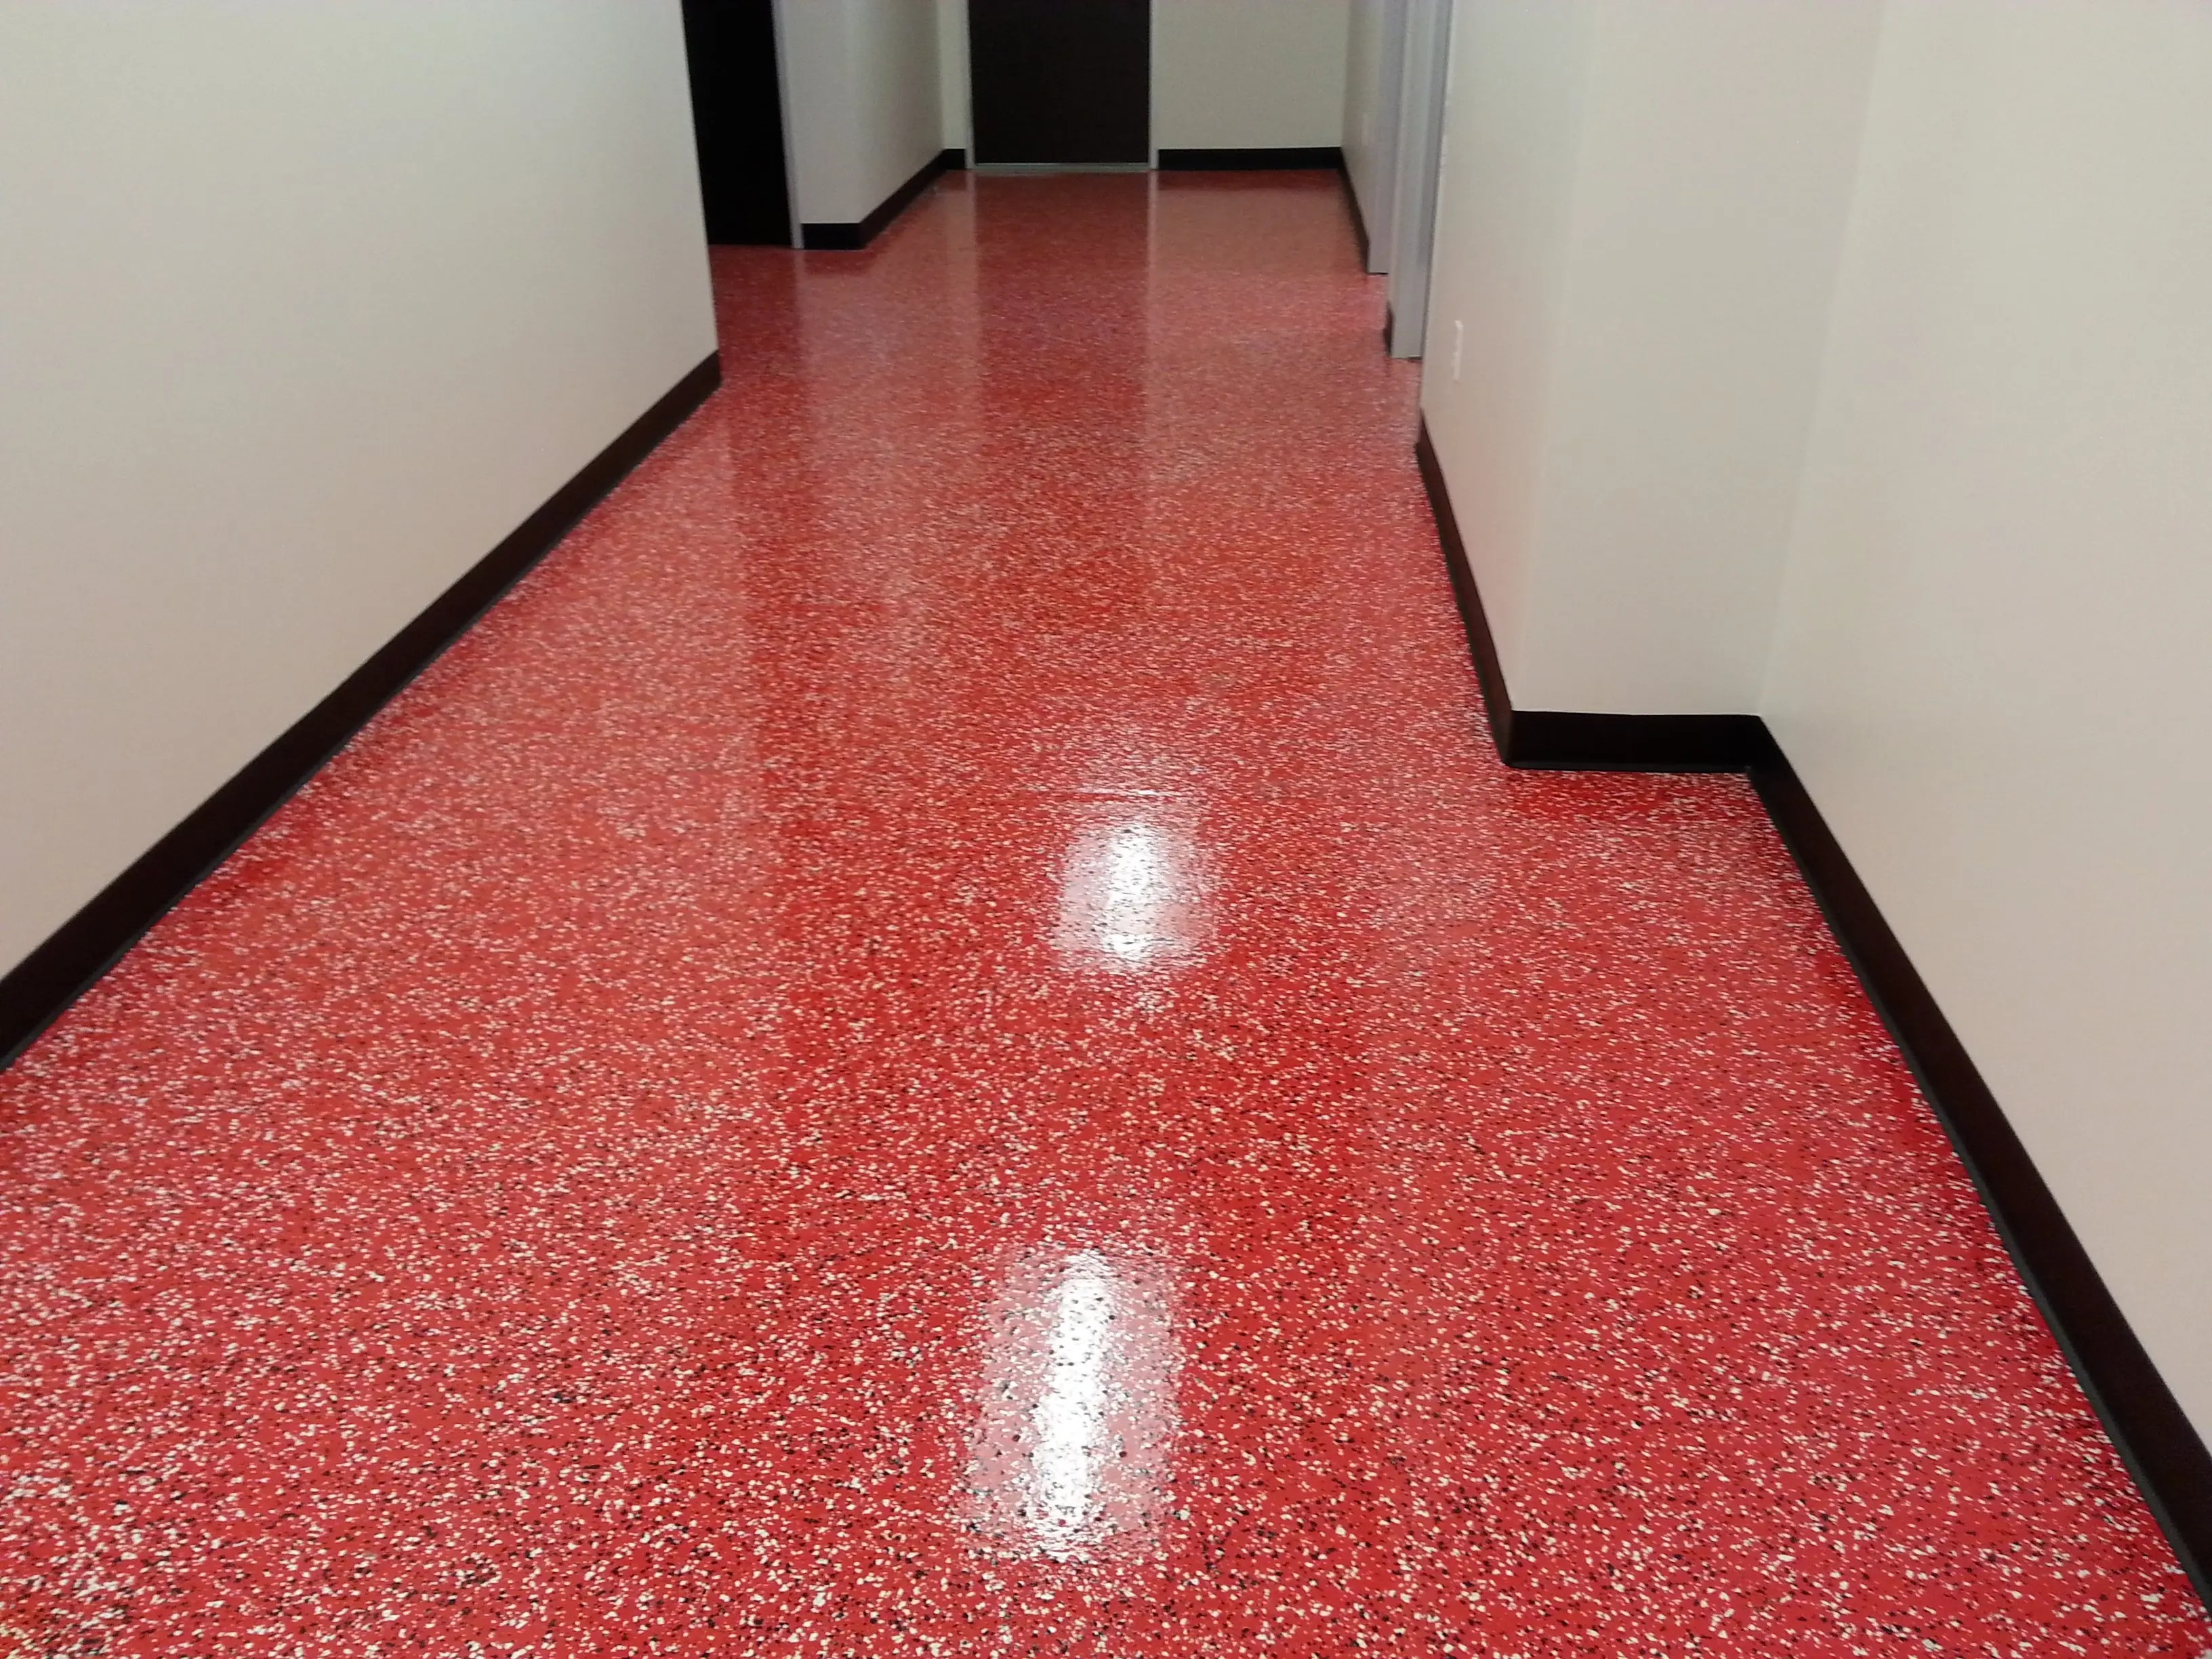 Garage Floor Paint Chips Epoxy Floor Coating Gallery Madison Wi Garage Flooring